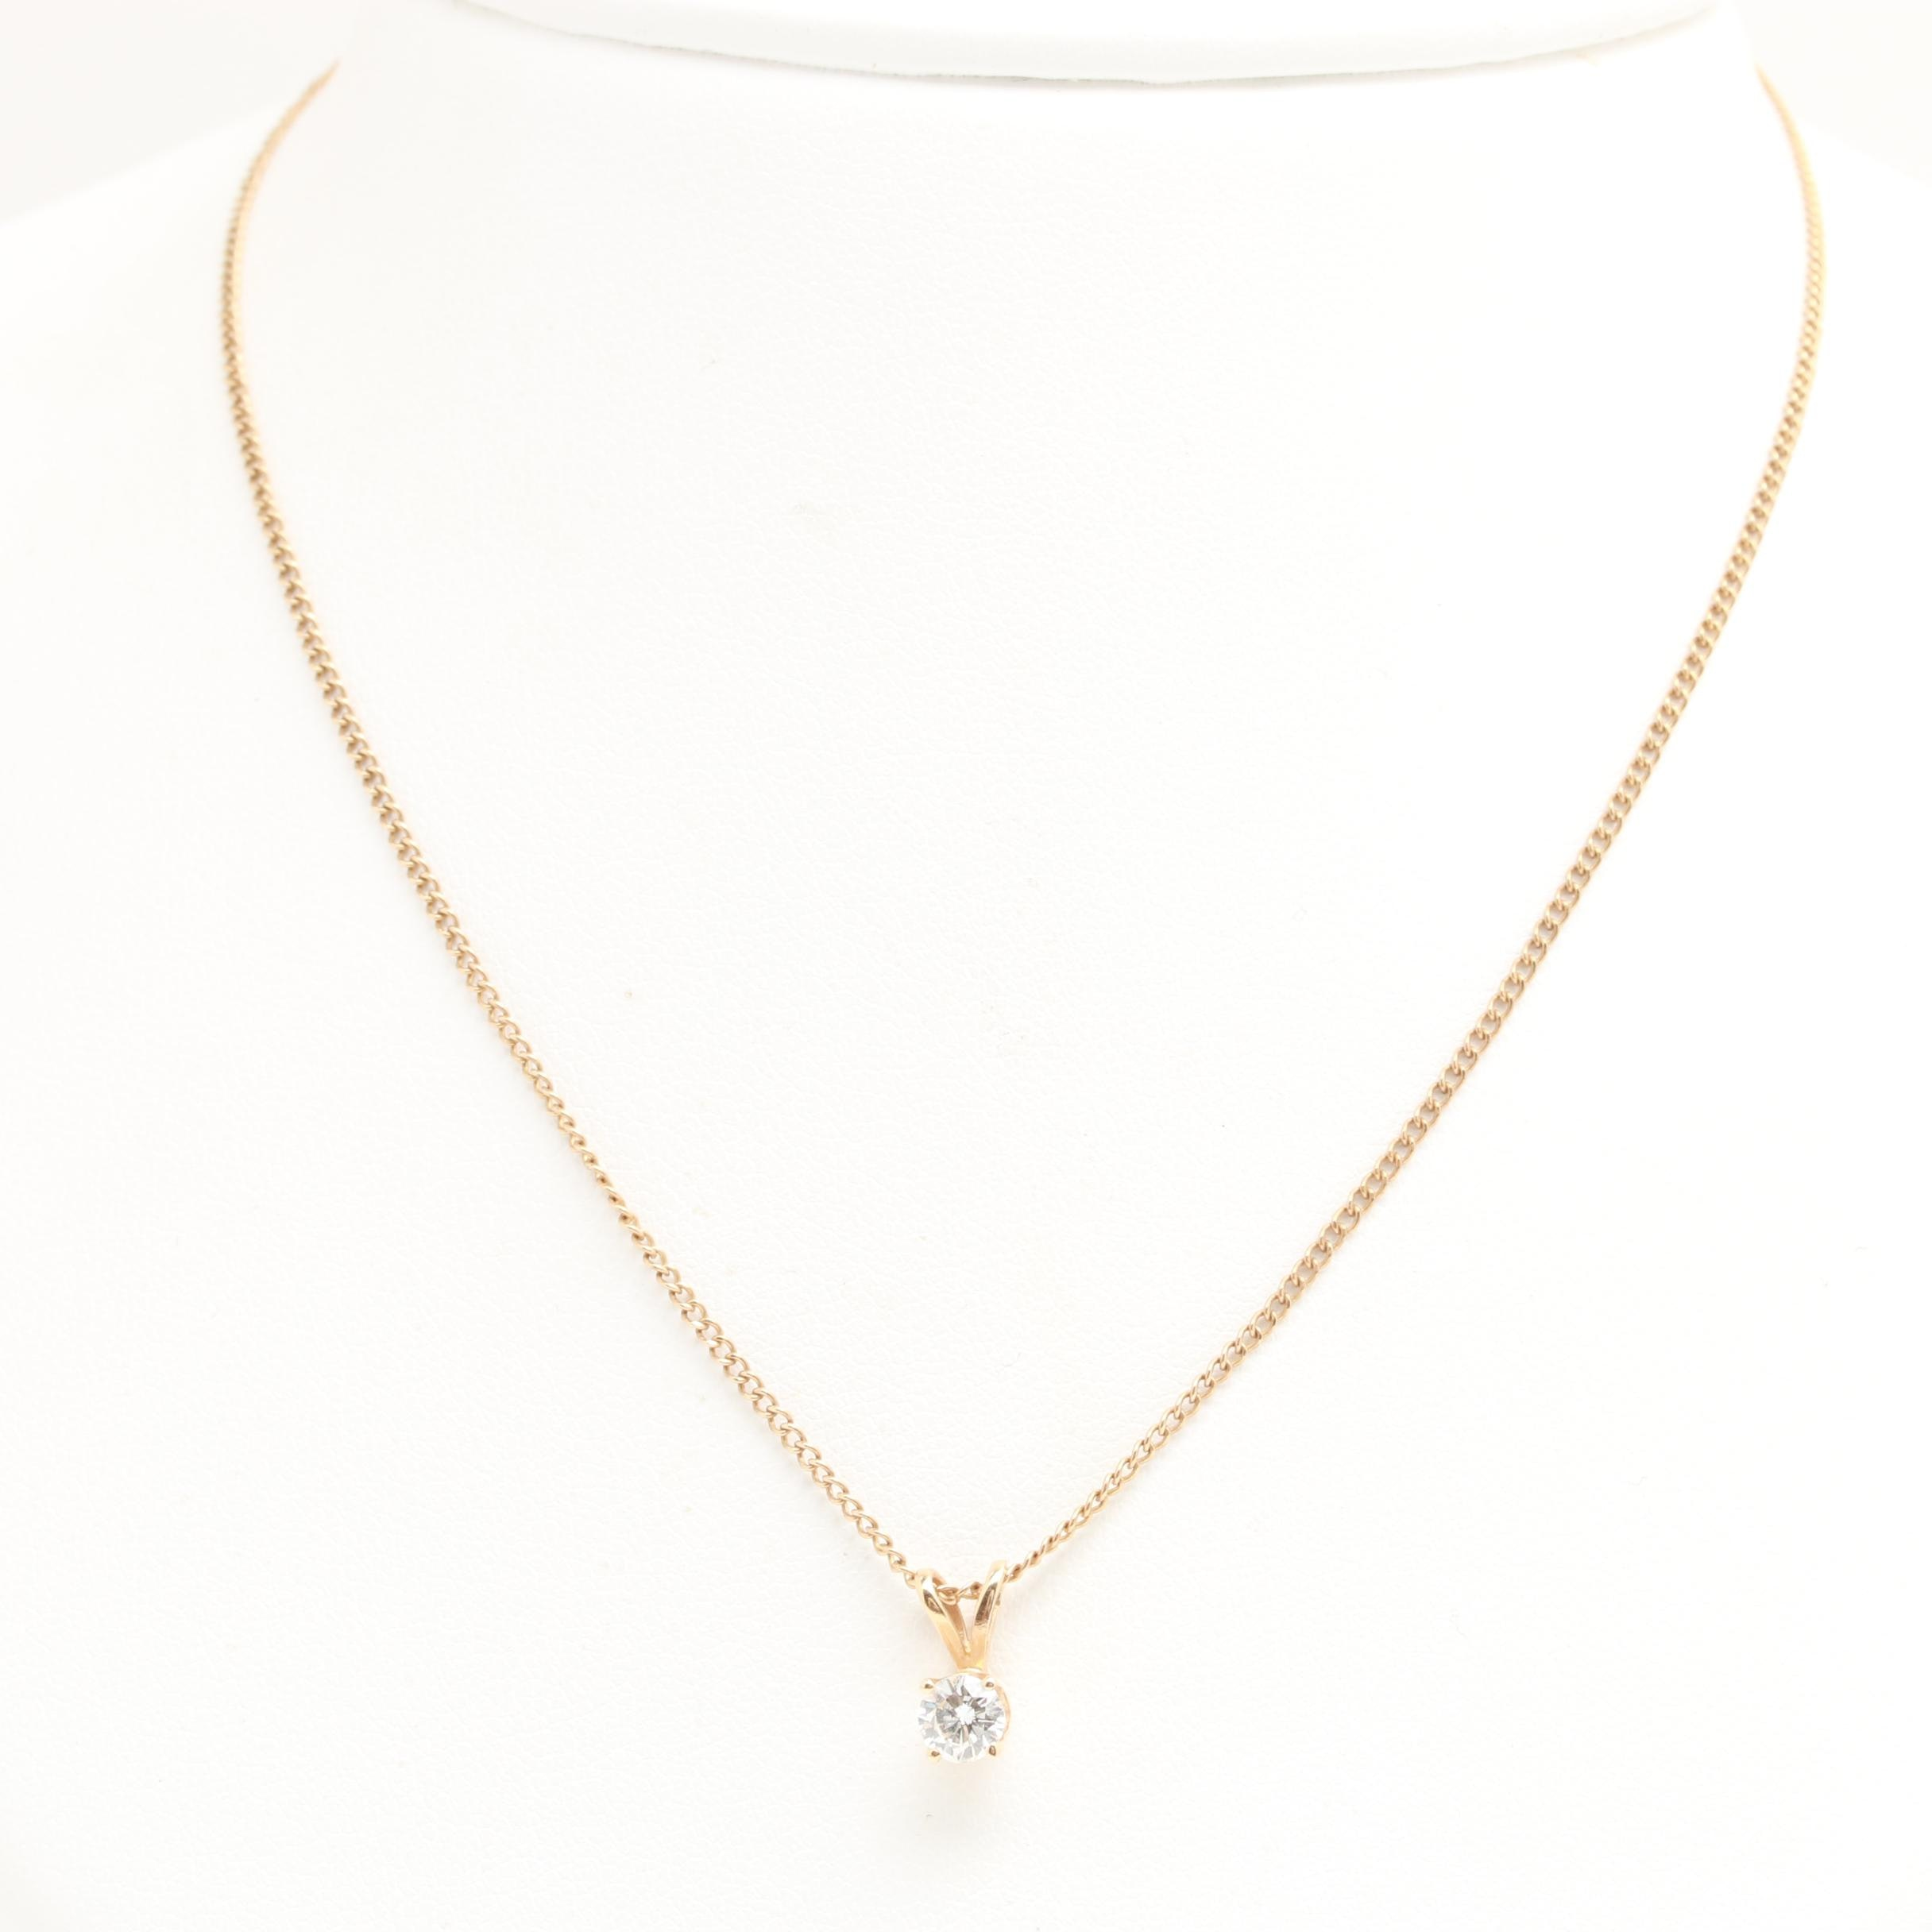 10K and 14K Yellow Gold Diamond Pendant Necklace